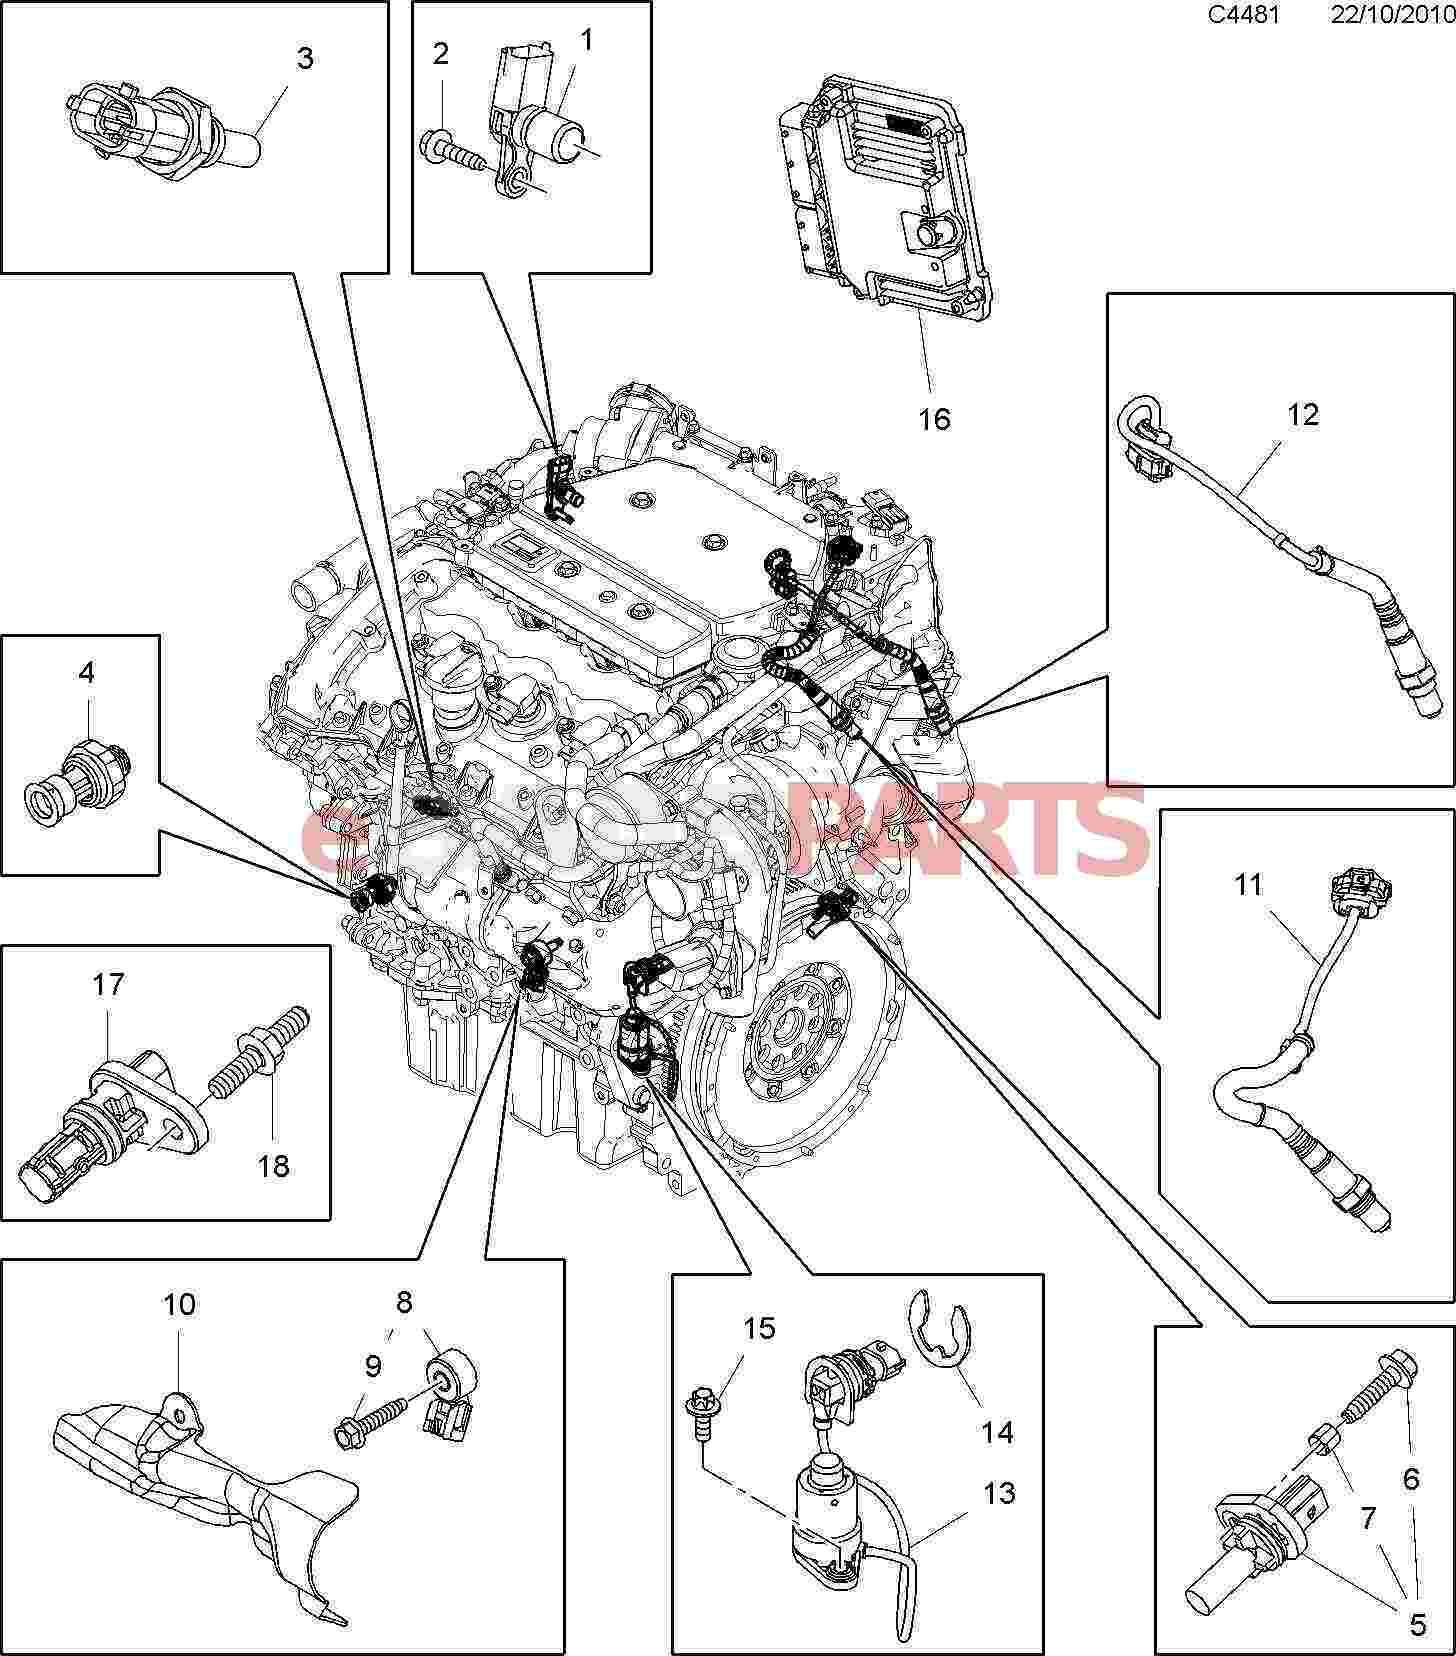 wrg 9367] 2004 mini cooper engine compartment diagram mini cooper fan relay location 2006 mini cooper s fuse box diagram